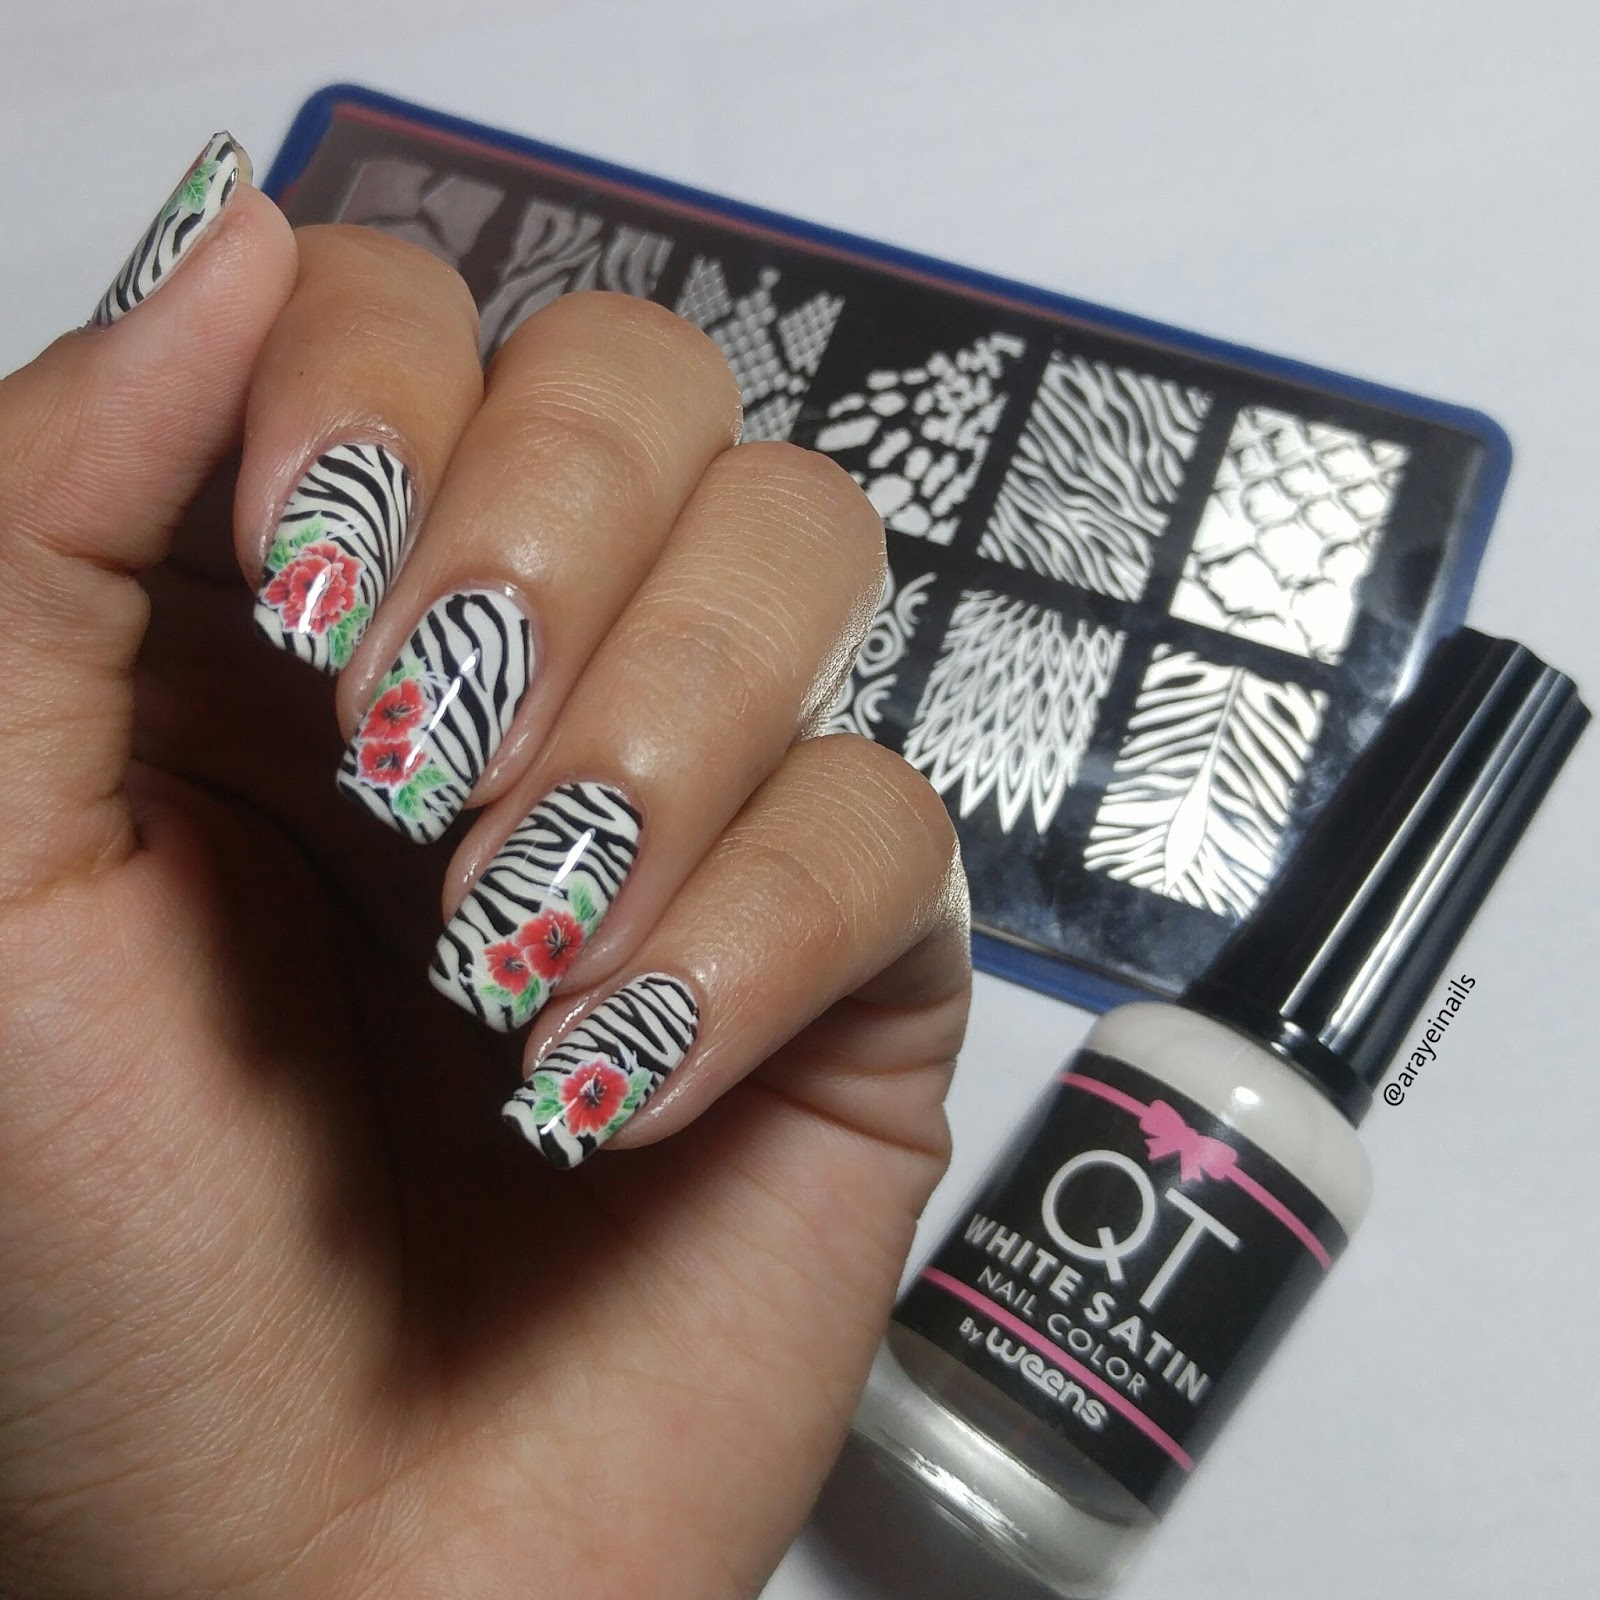 Wonderful Journey Of My Nails: Zebra Nails with a Twist of Floral ...